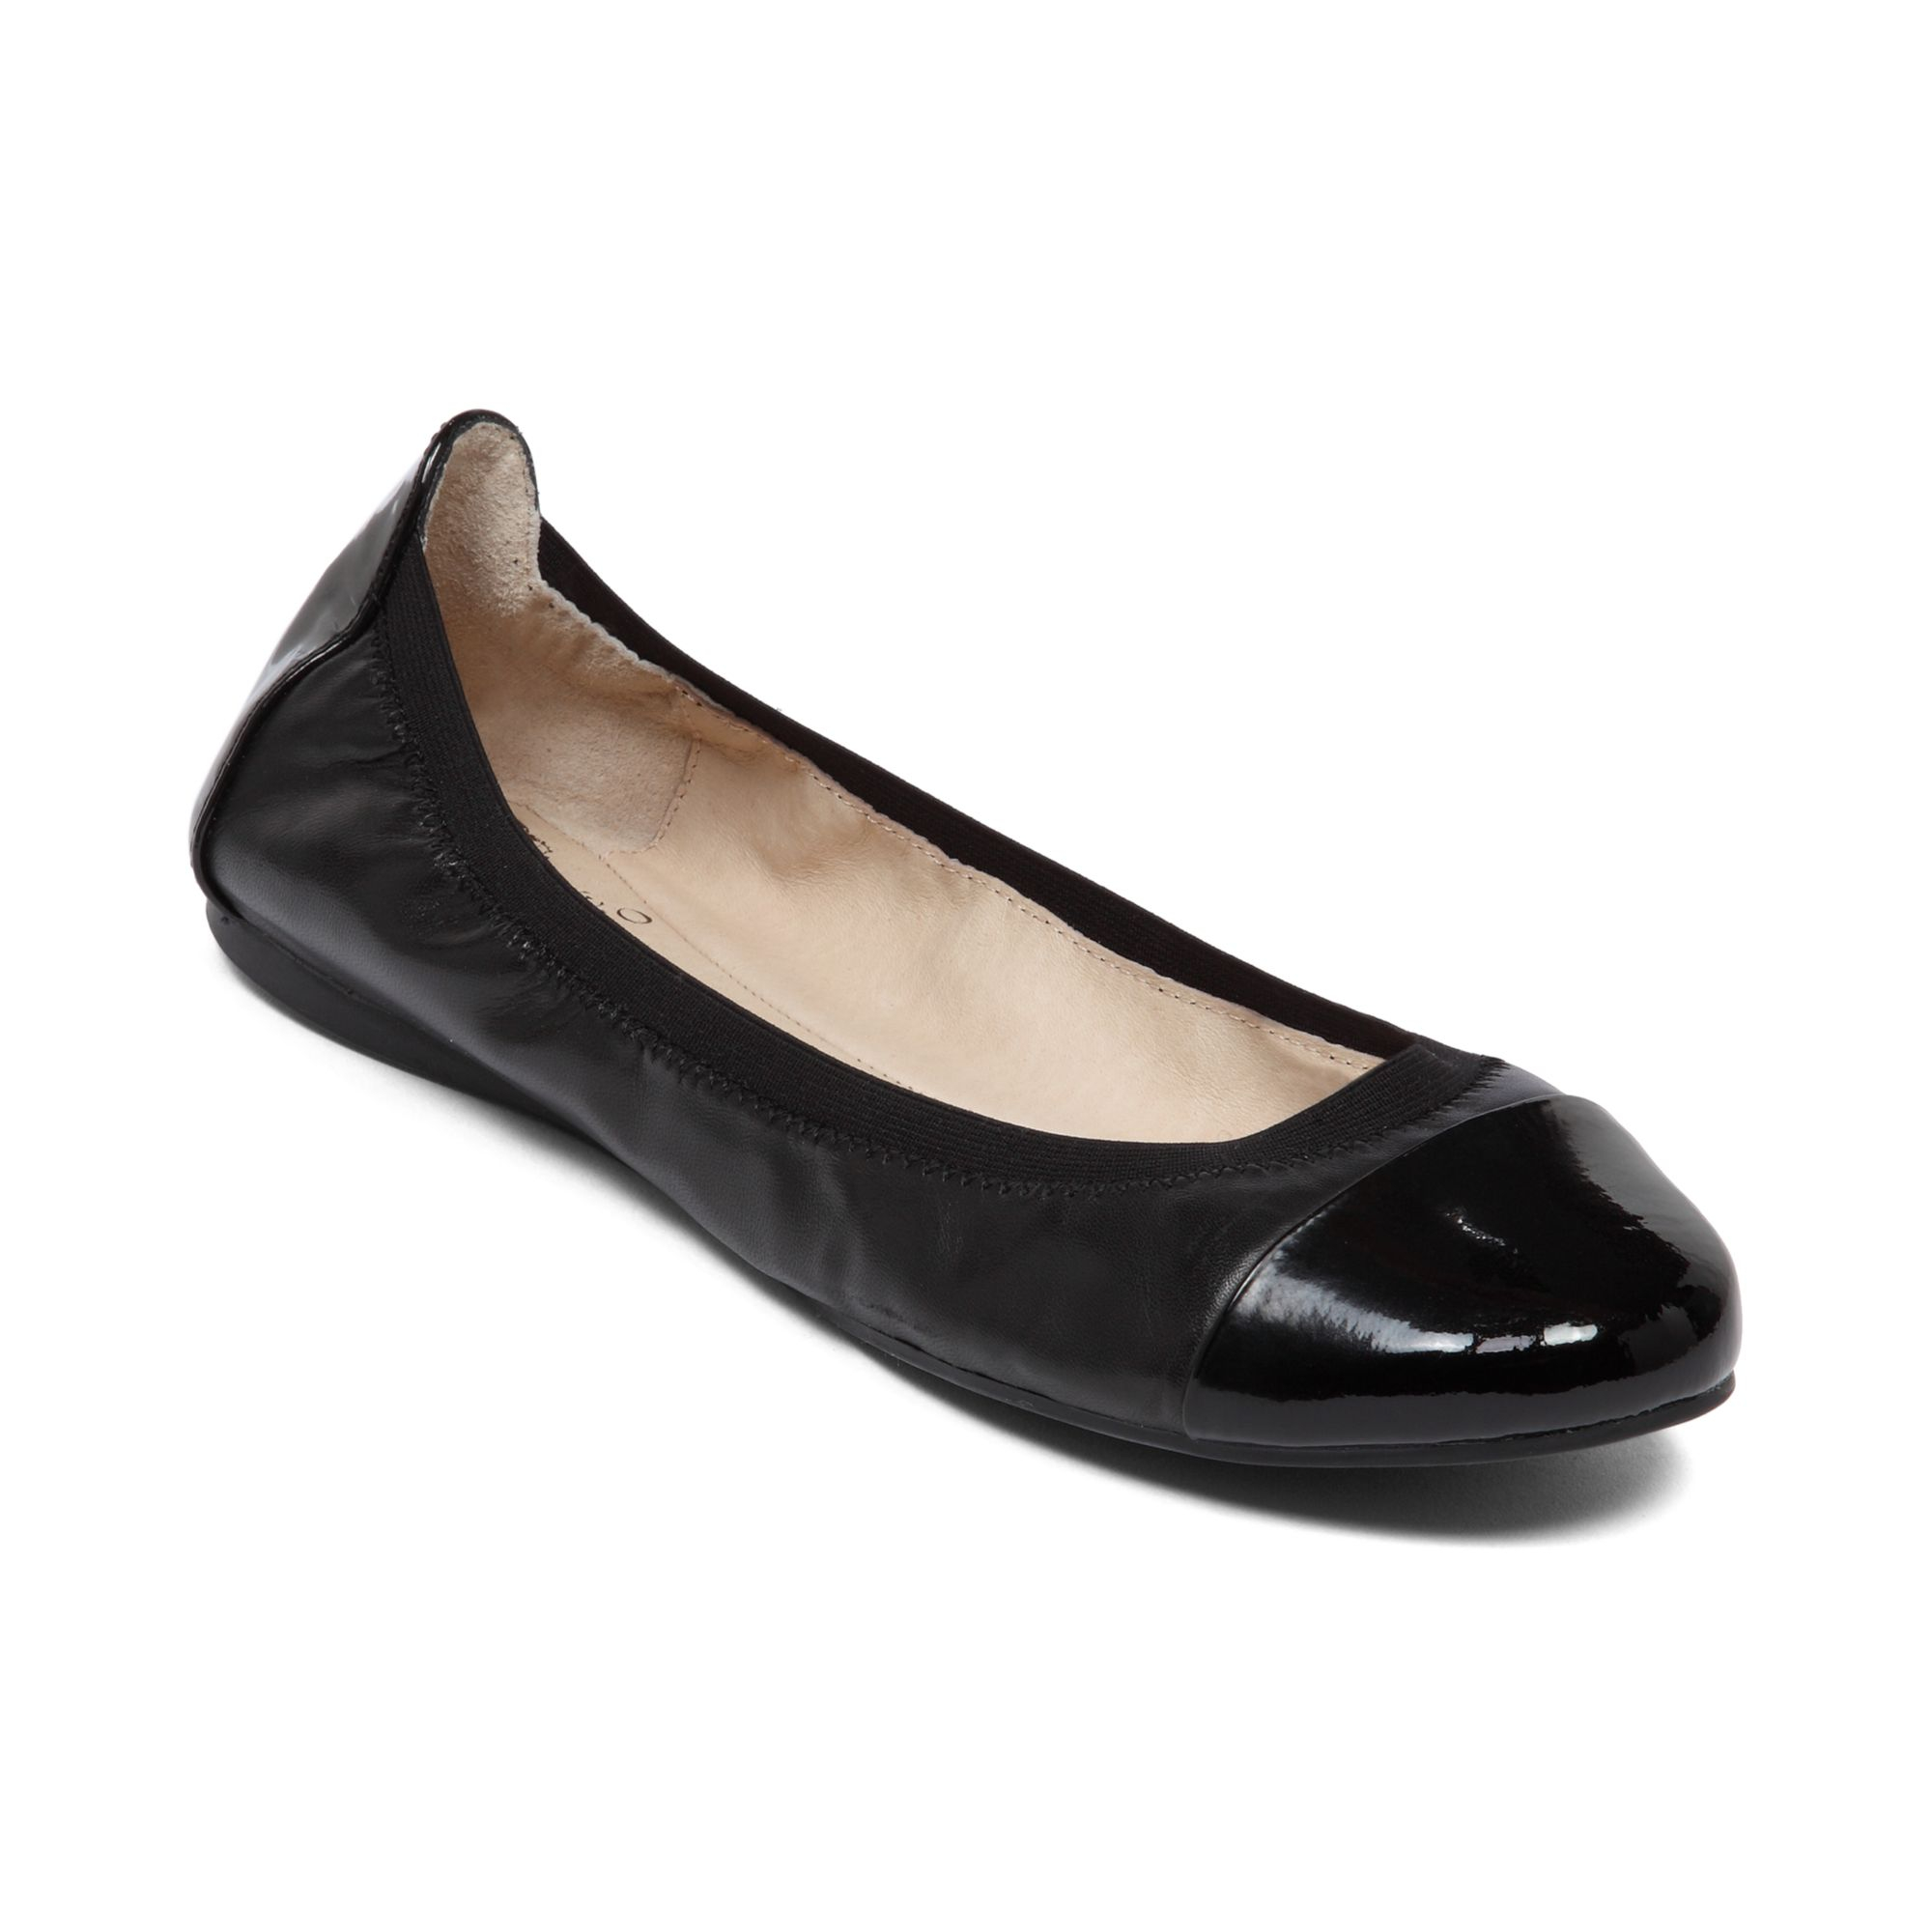 Blck Flat Shoes